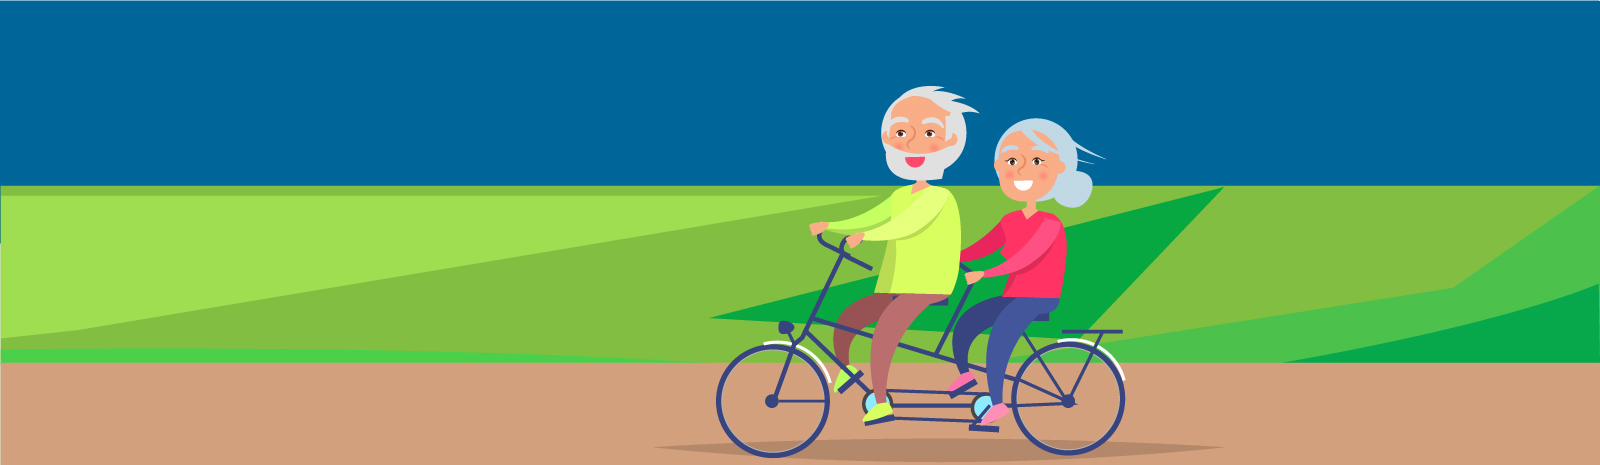 Elderly couple riding a bike outside illustration